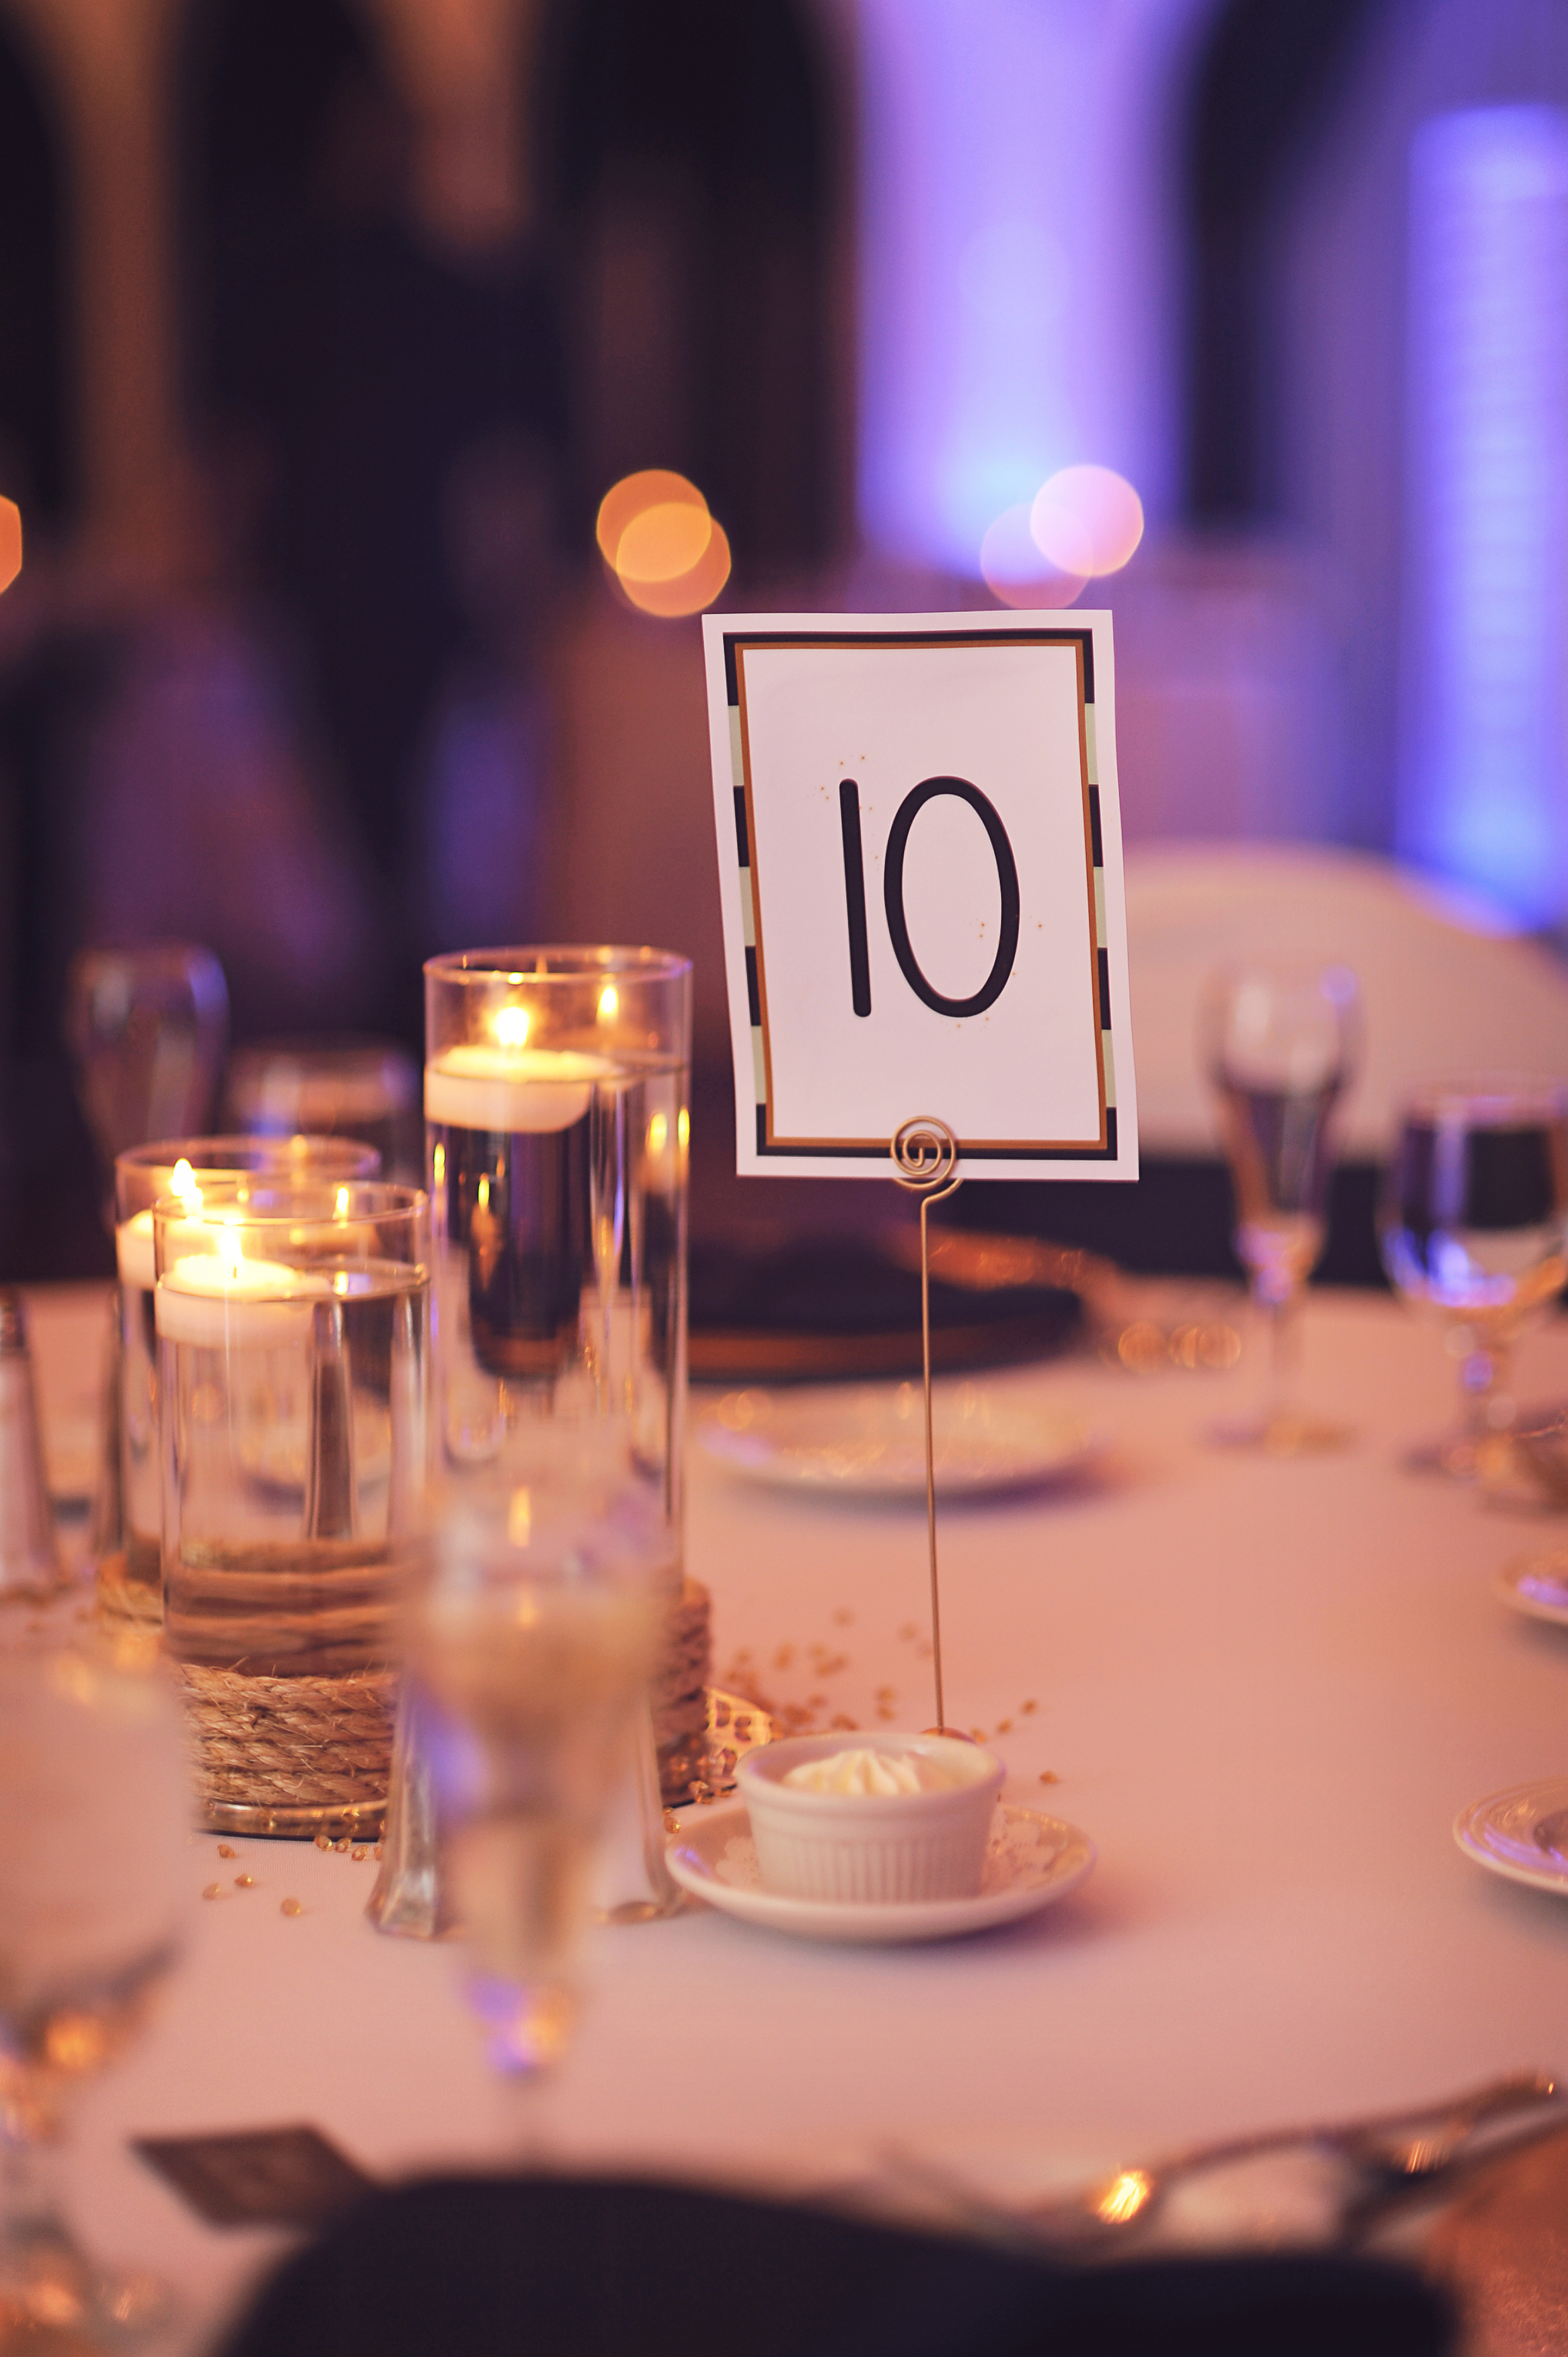 If you carefully notice, a little bit of pixie dust adorned each table number. :D